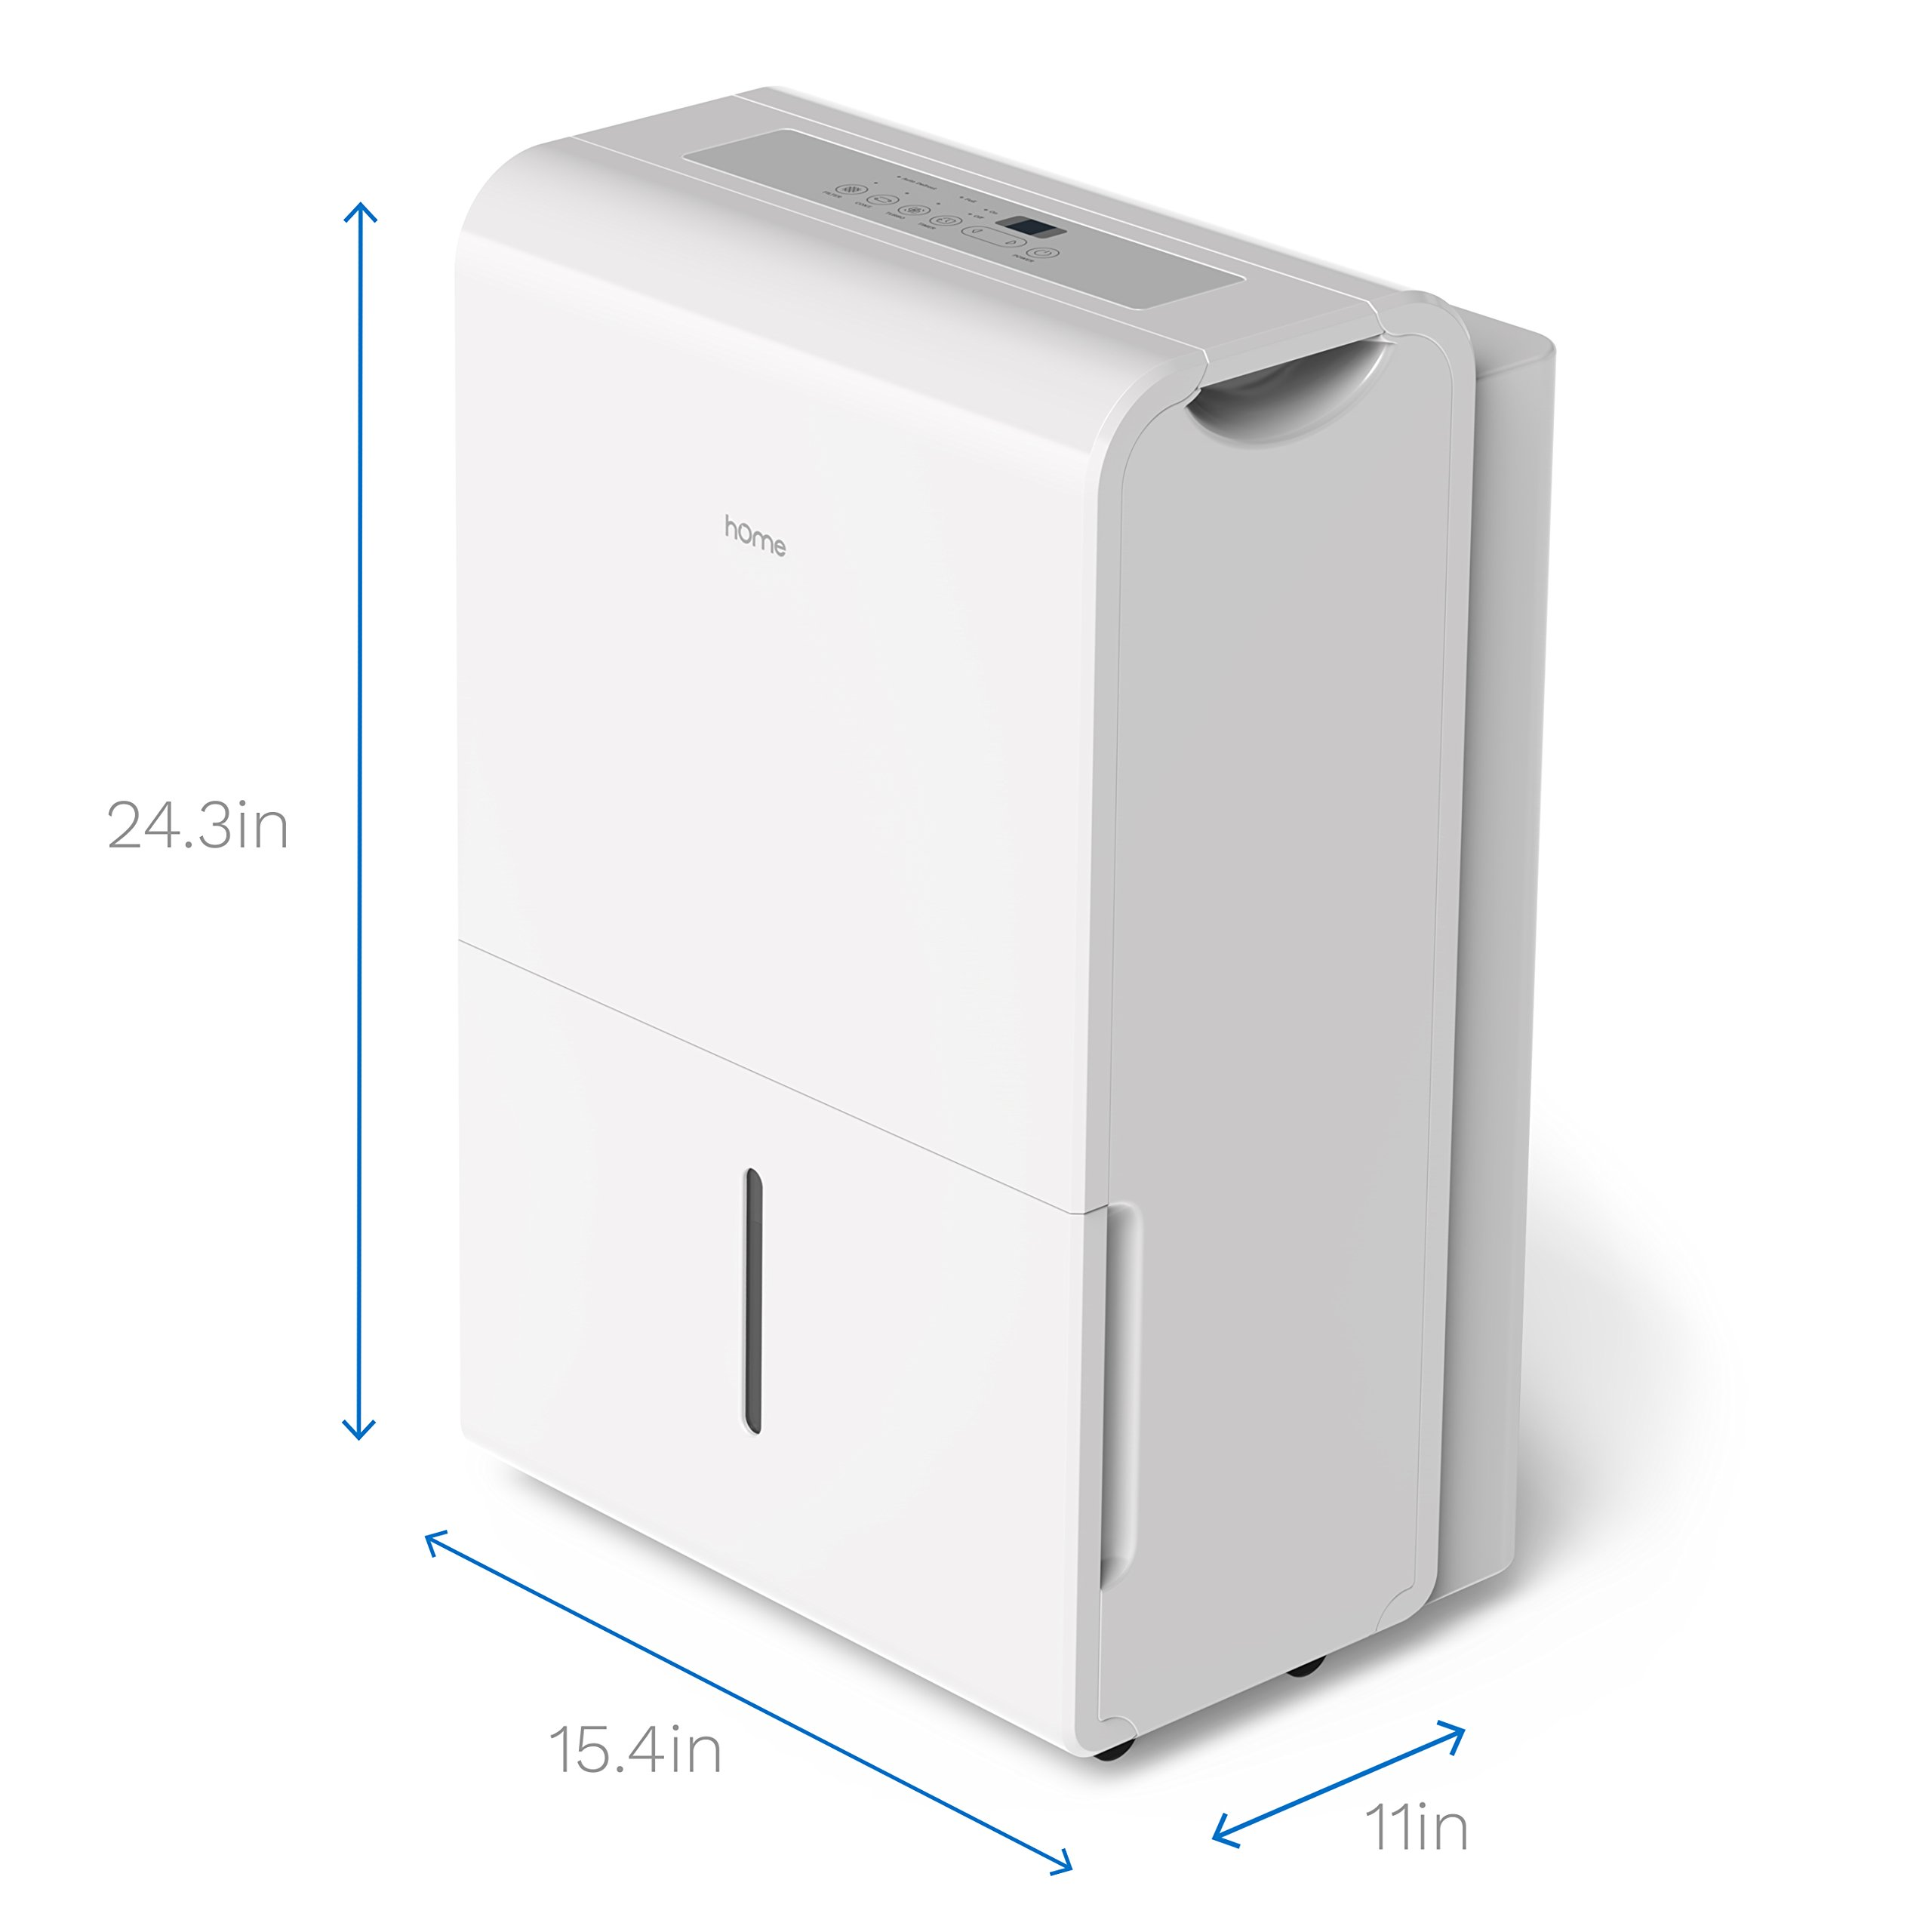 hOmeLabs 9 Gallon (70 Pint) Dehumidifier Energy Star Safe Mid Size Portable Dehumidifiers for Basements Large Rooms up to 4000 Sq Ft with Fan Wheels and Drain Hose Outlet to Remove Odor and Allergens by hOmeLabs (Image #5)